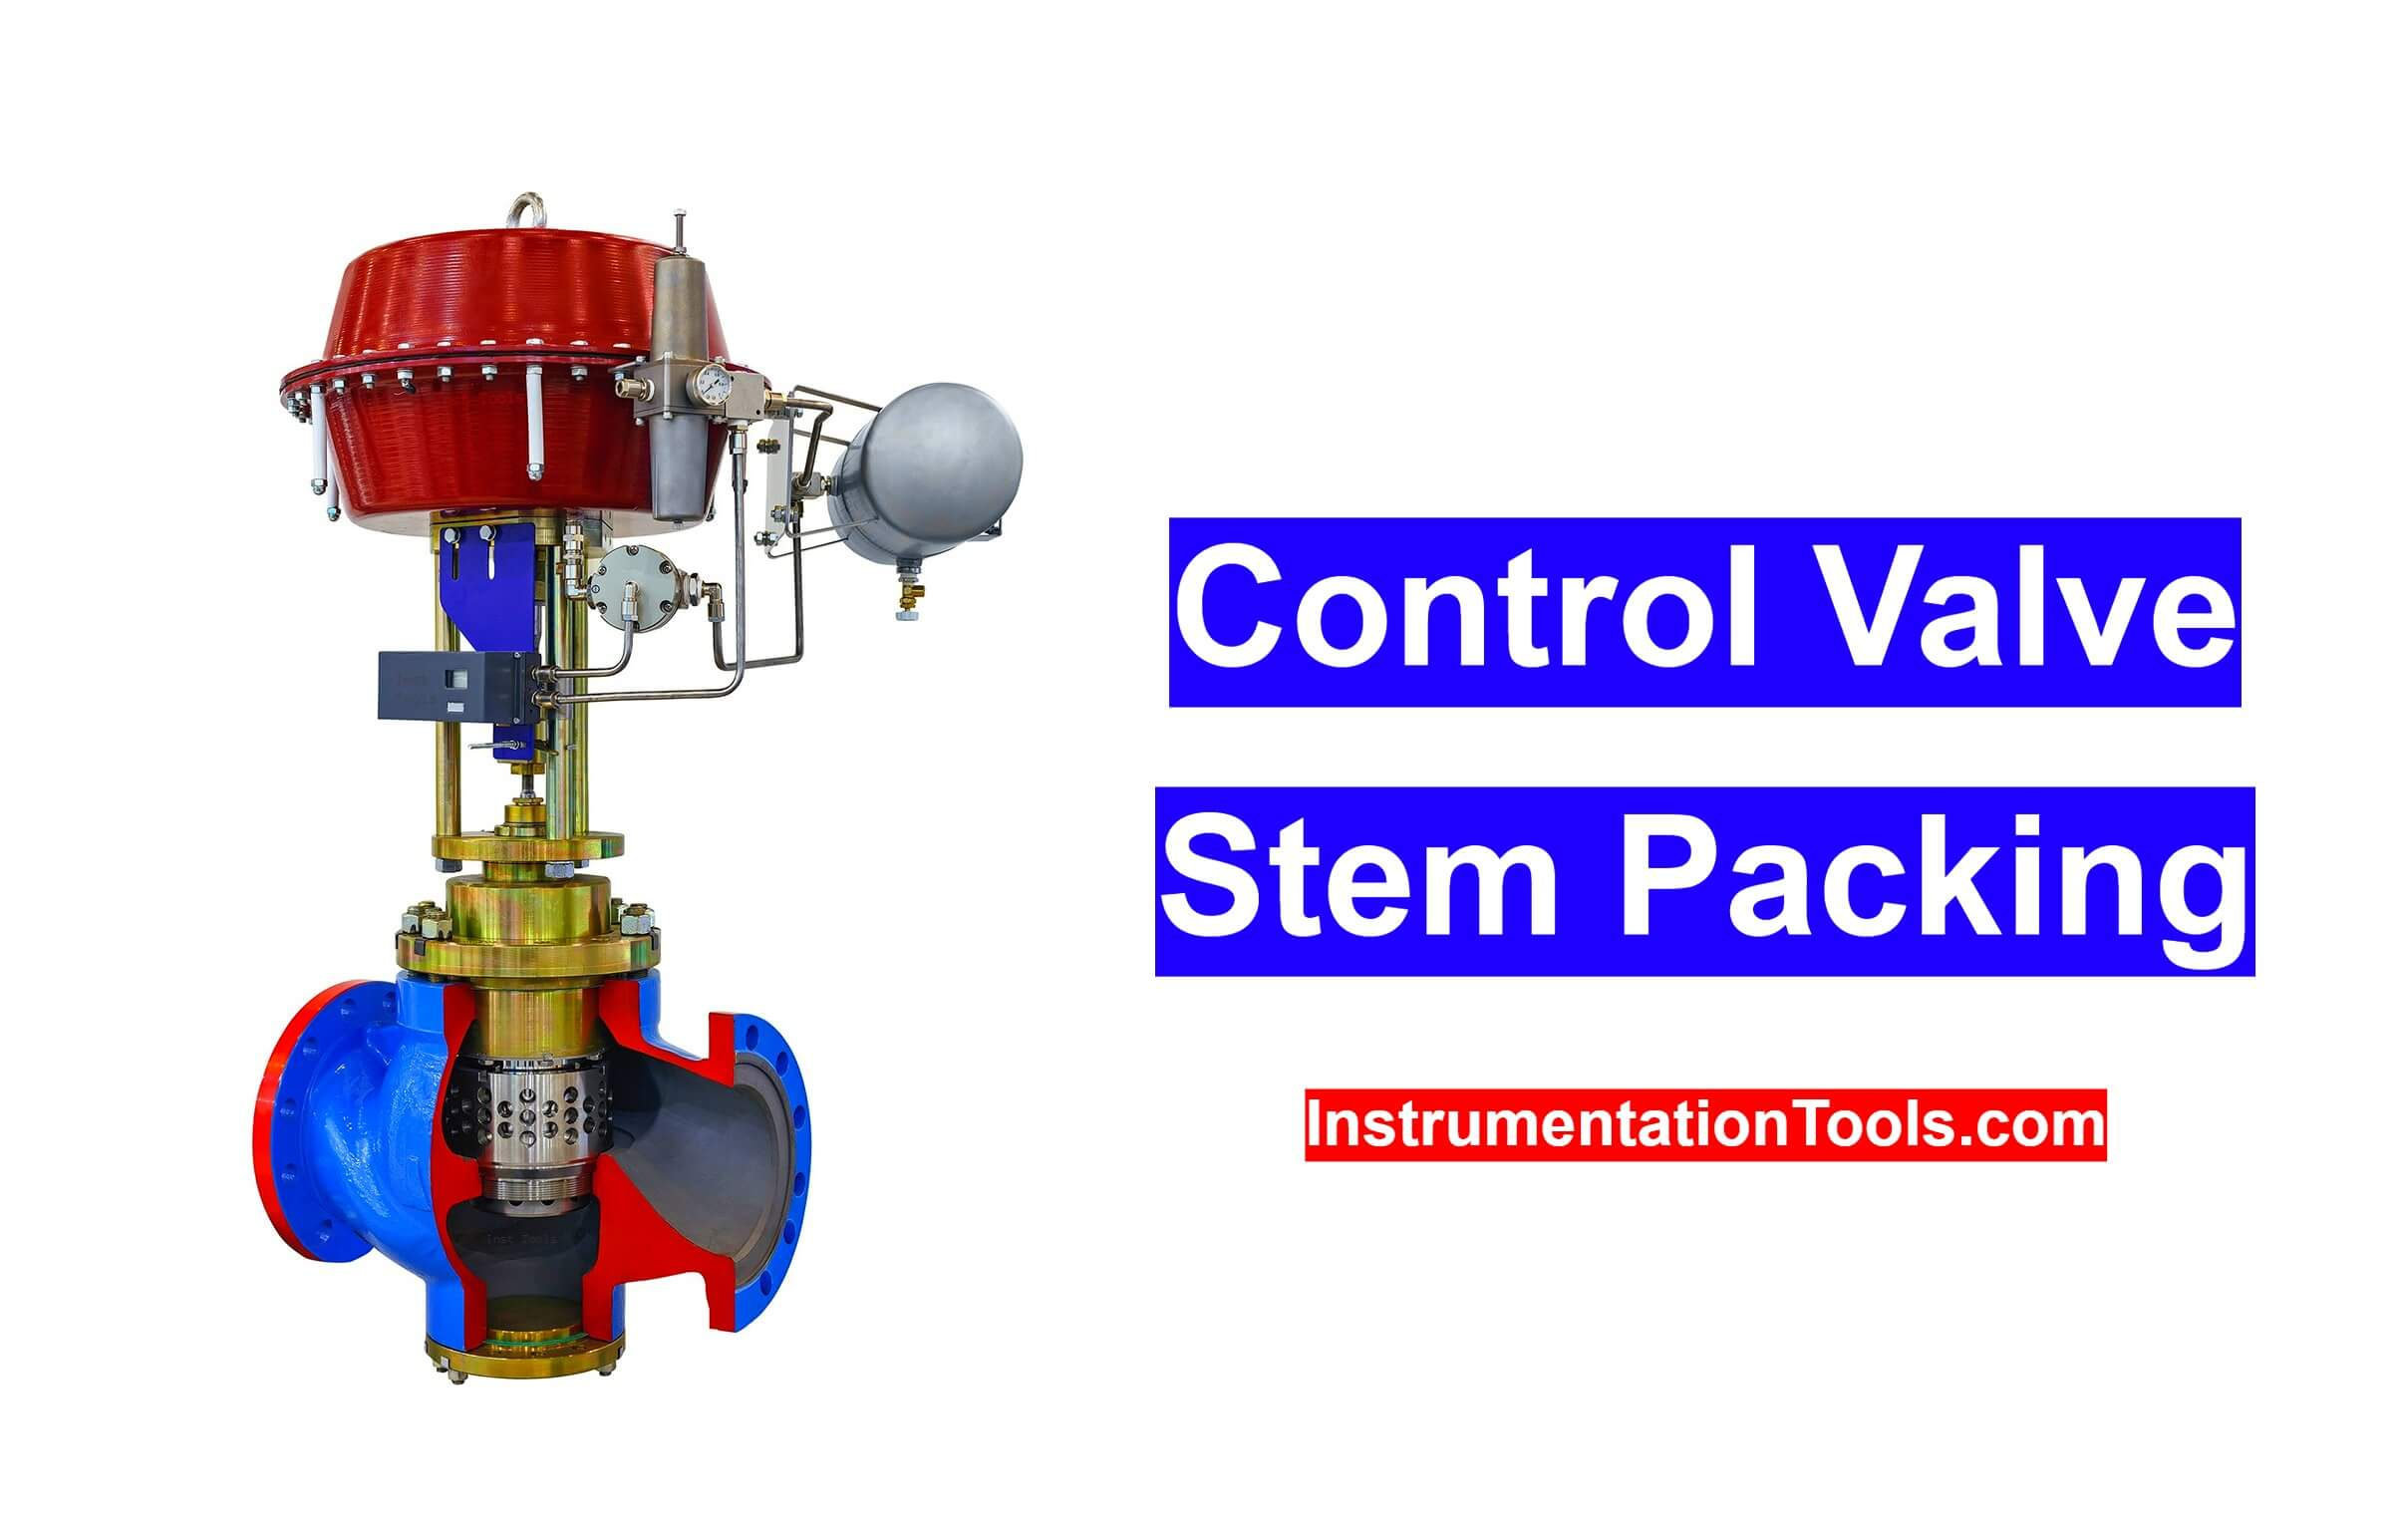 How to Remove Control Valve Stem Packing Procedure